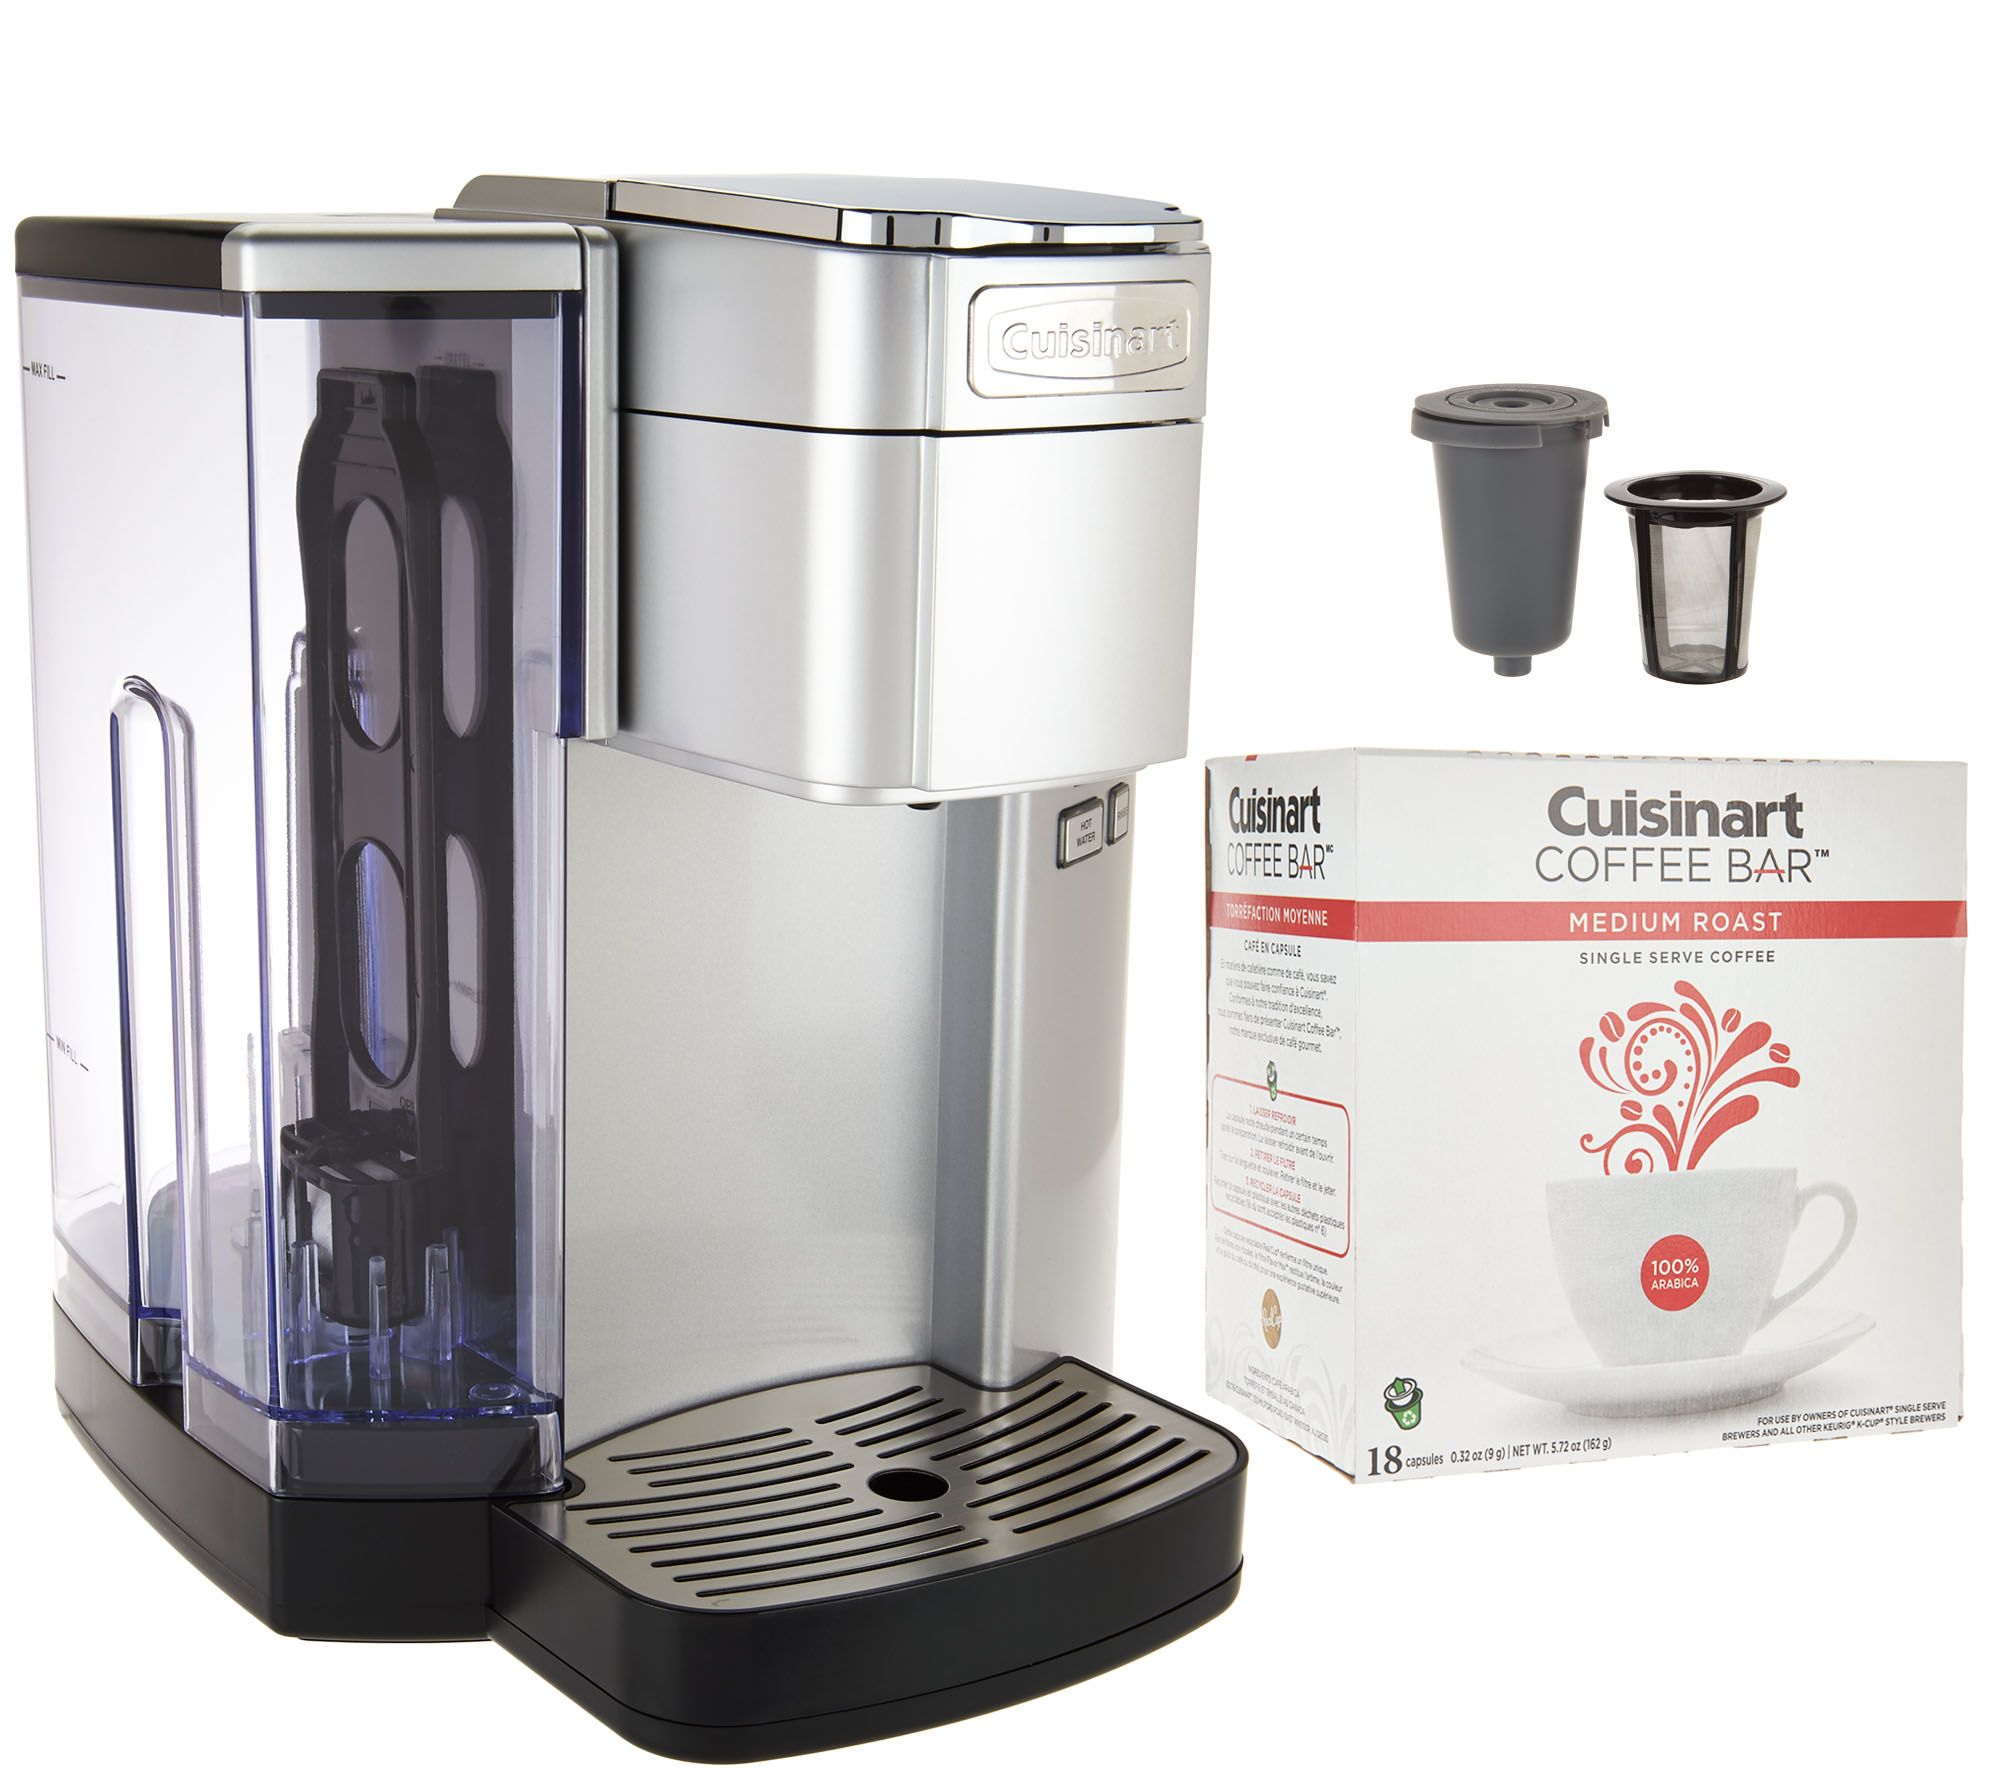 Cuisinart SS10 Single Serve Coffee Maker w Barista Cup & 18 Coffee